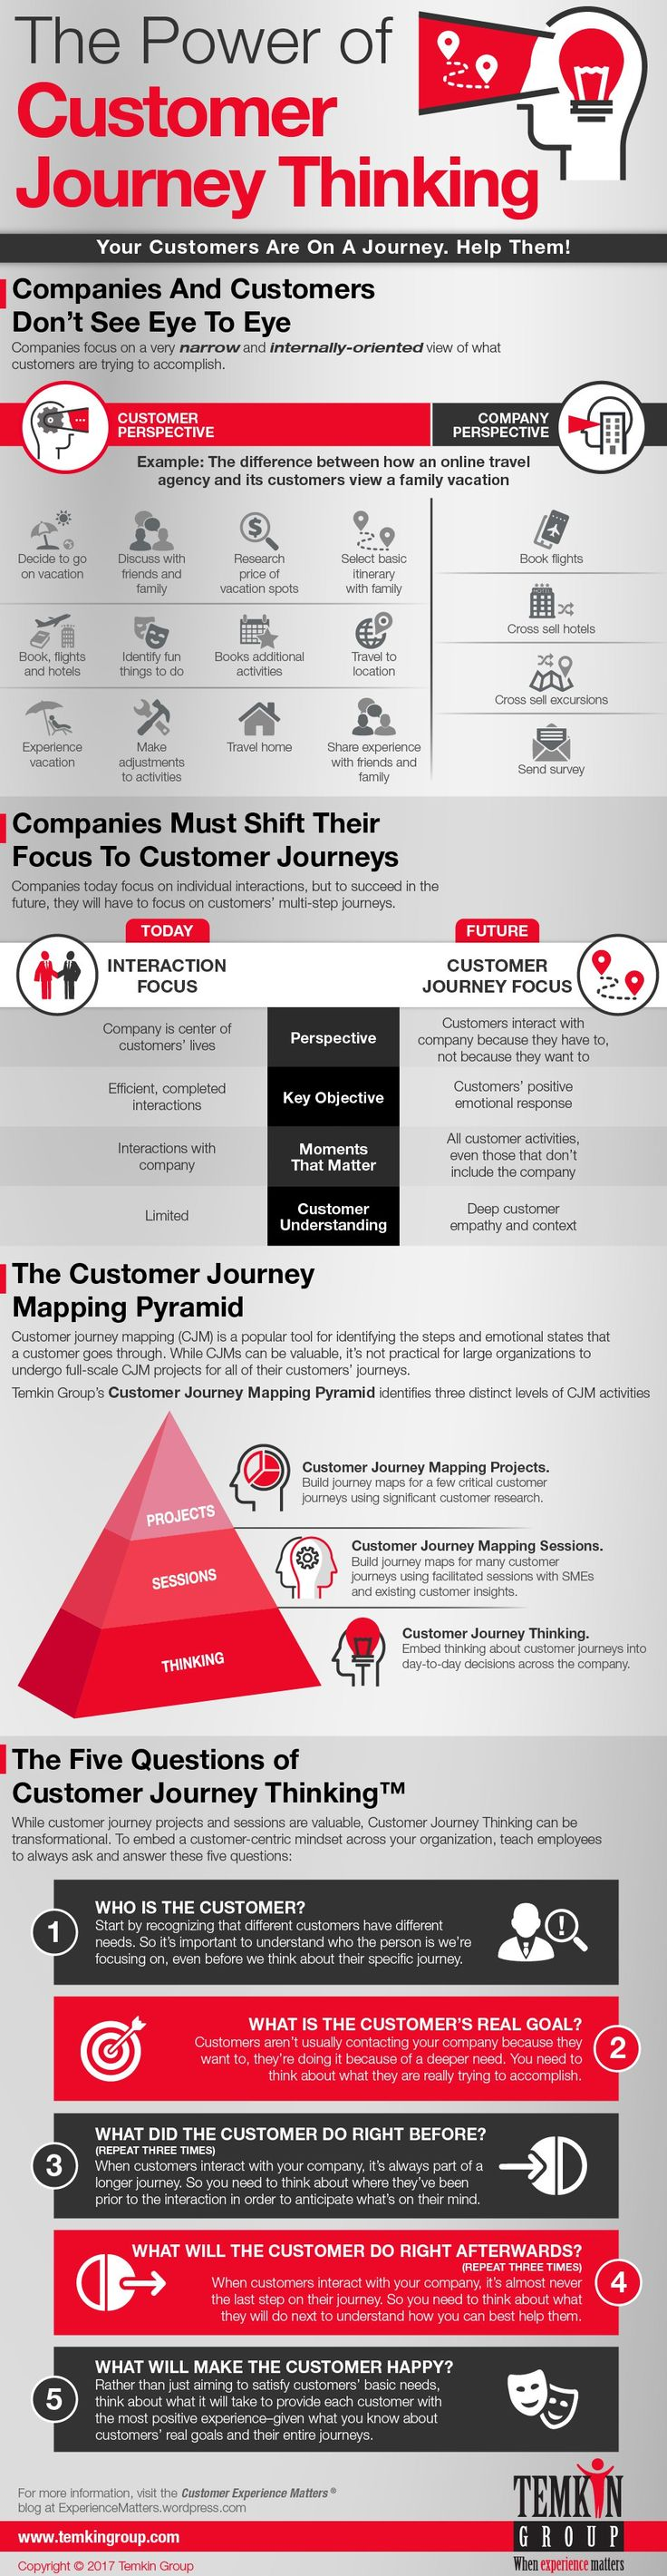 62 best infographix images on pinterest infographic infographics the power of customer journey thinking infographic customer experience matters fandeluxe Image collections